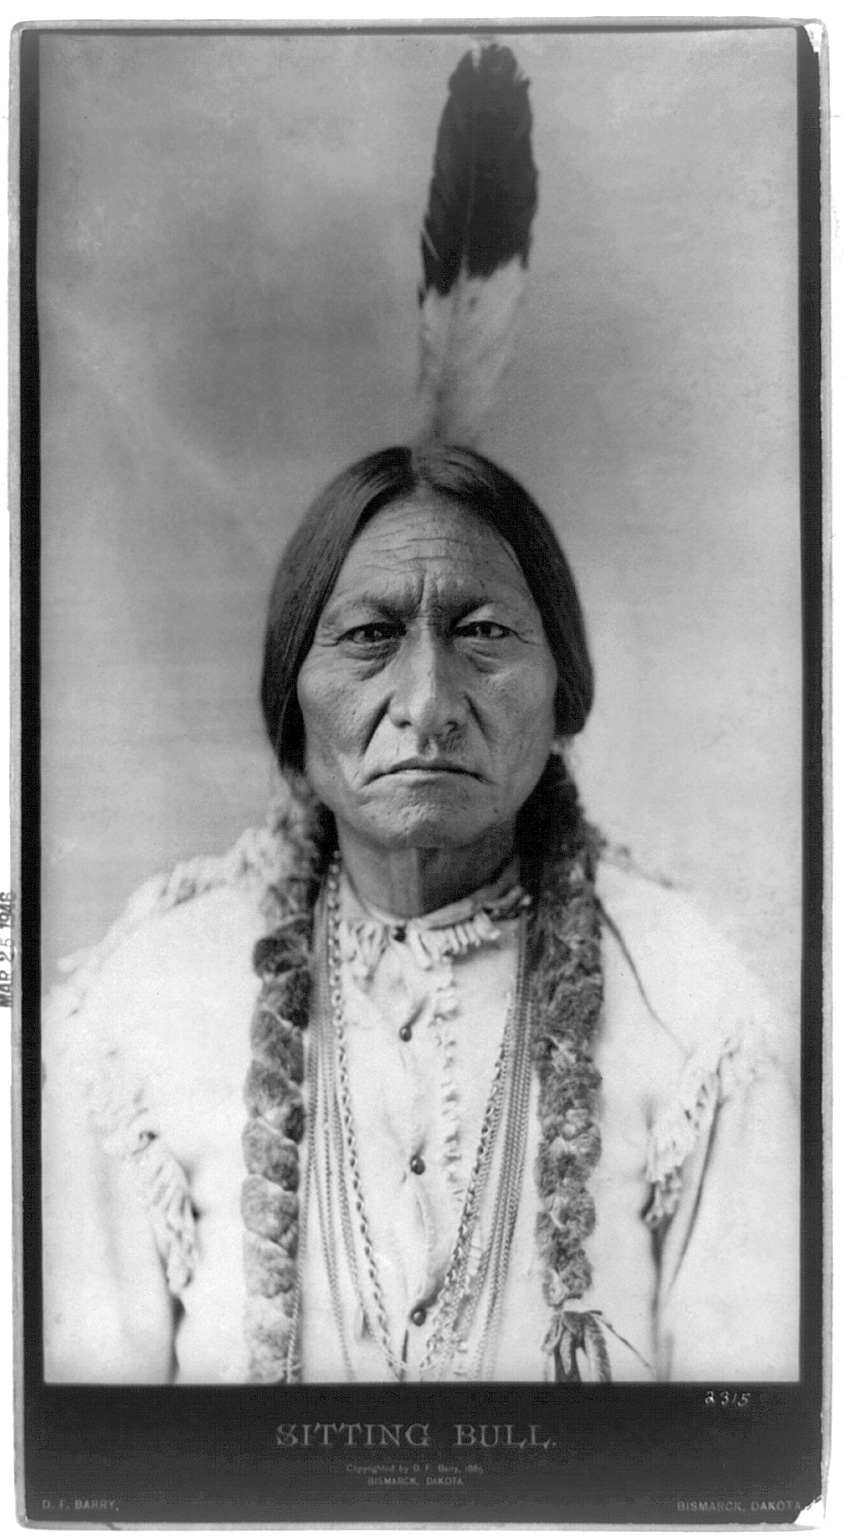 Sitting Bull in 1885 by D.F. Barry